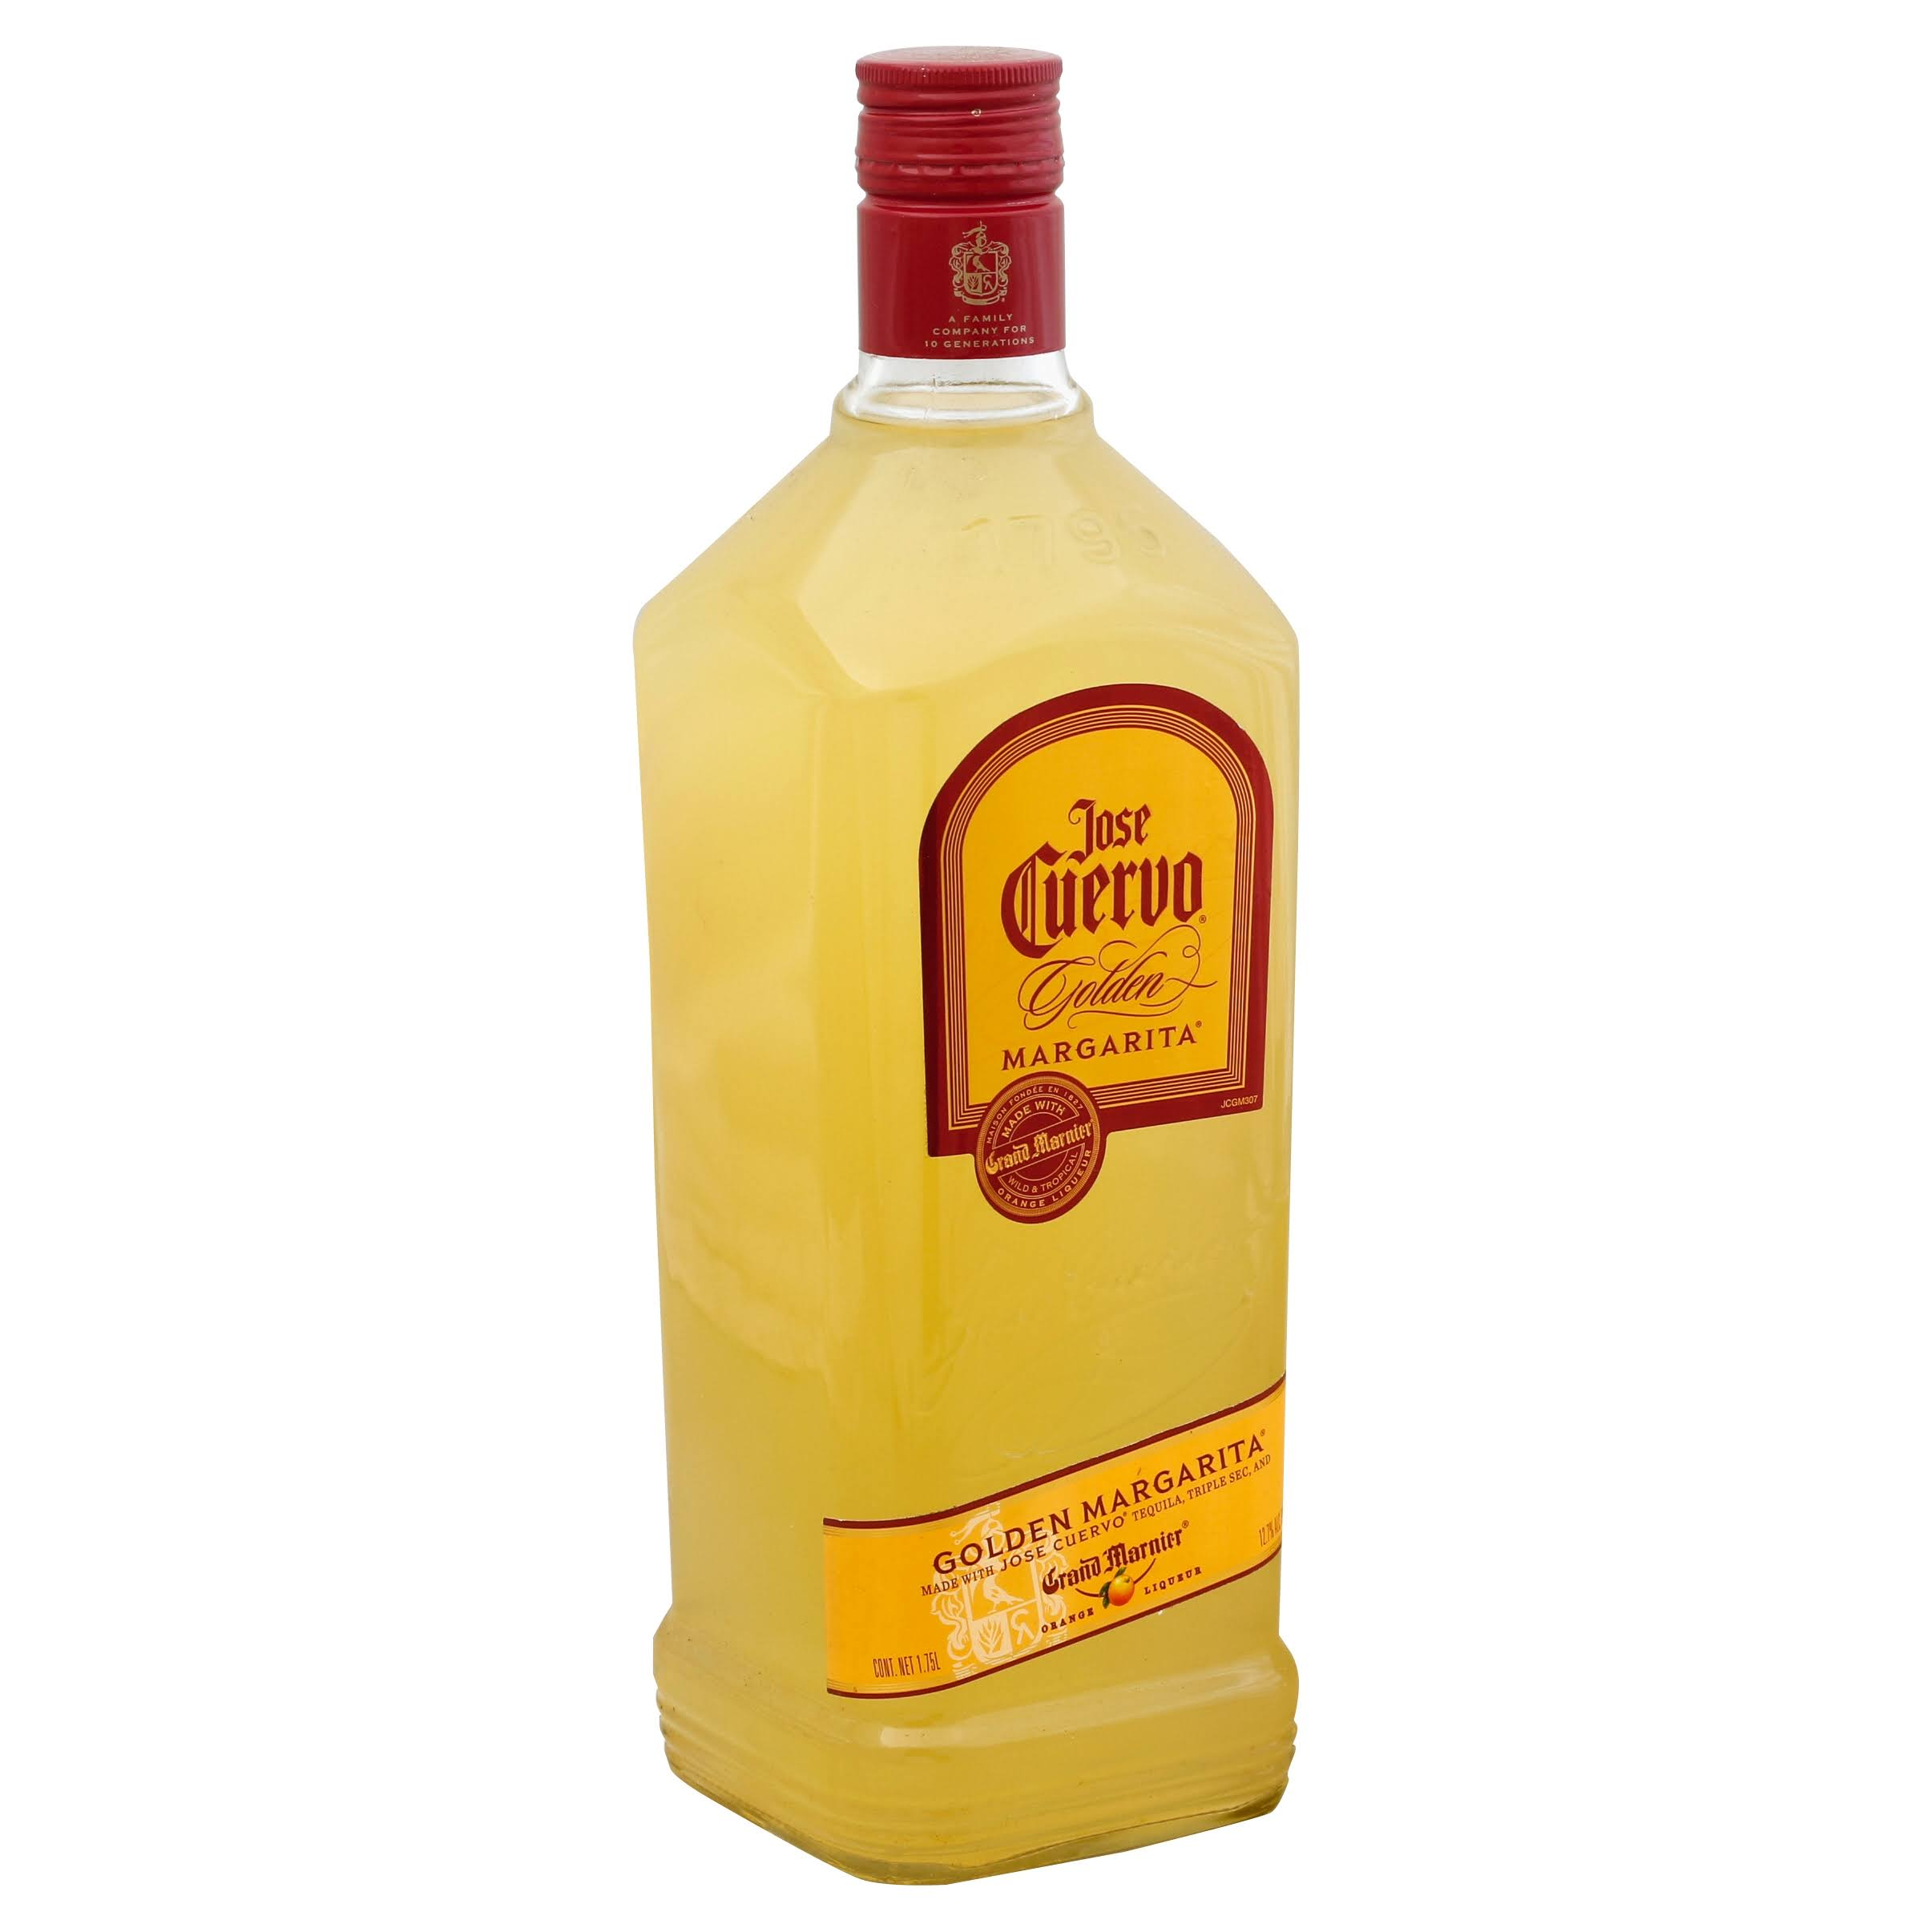 Jose Cuervo Golden Margarita - 1.75 L bottle